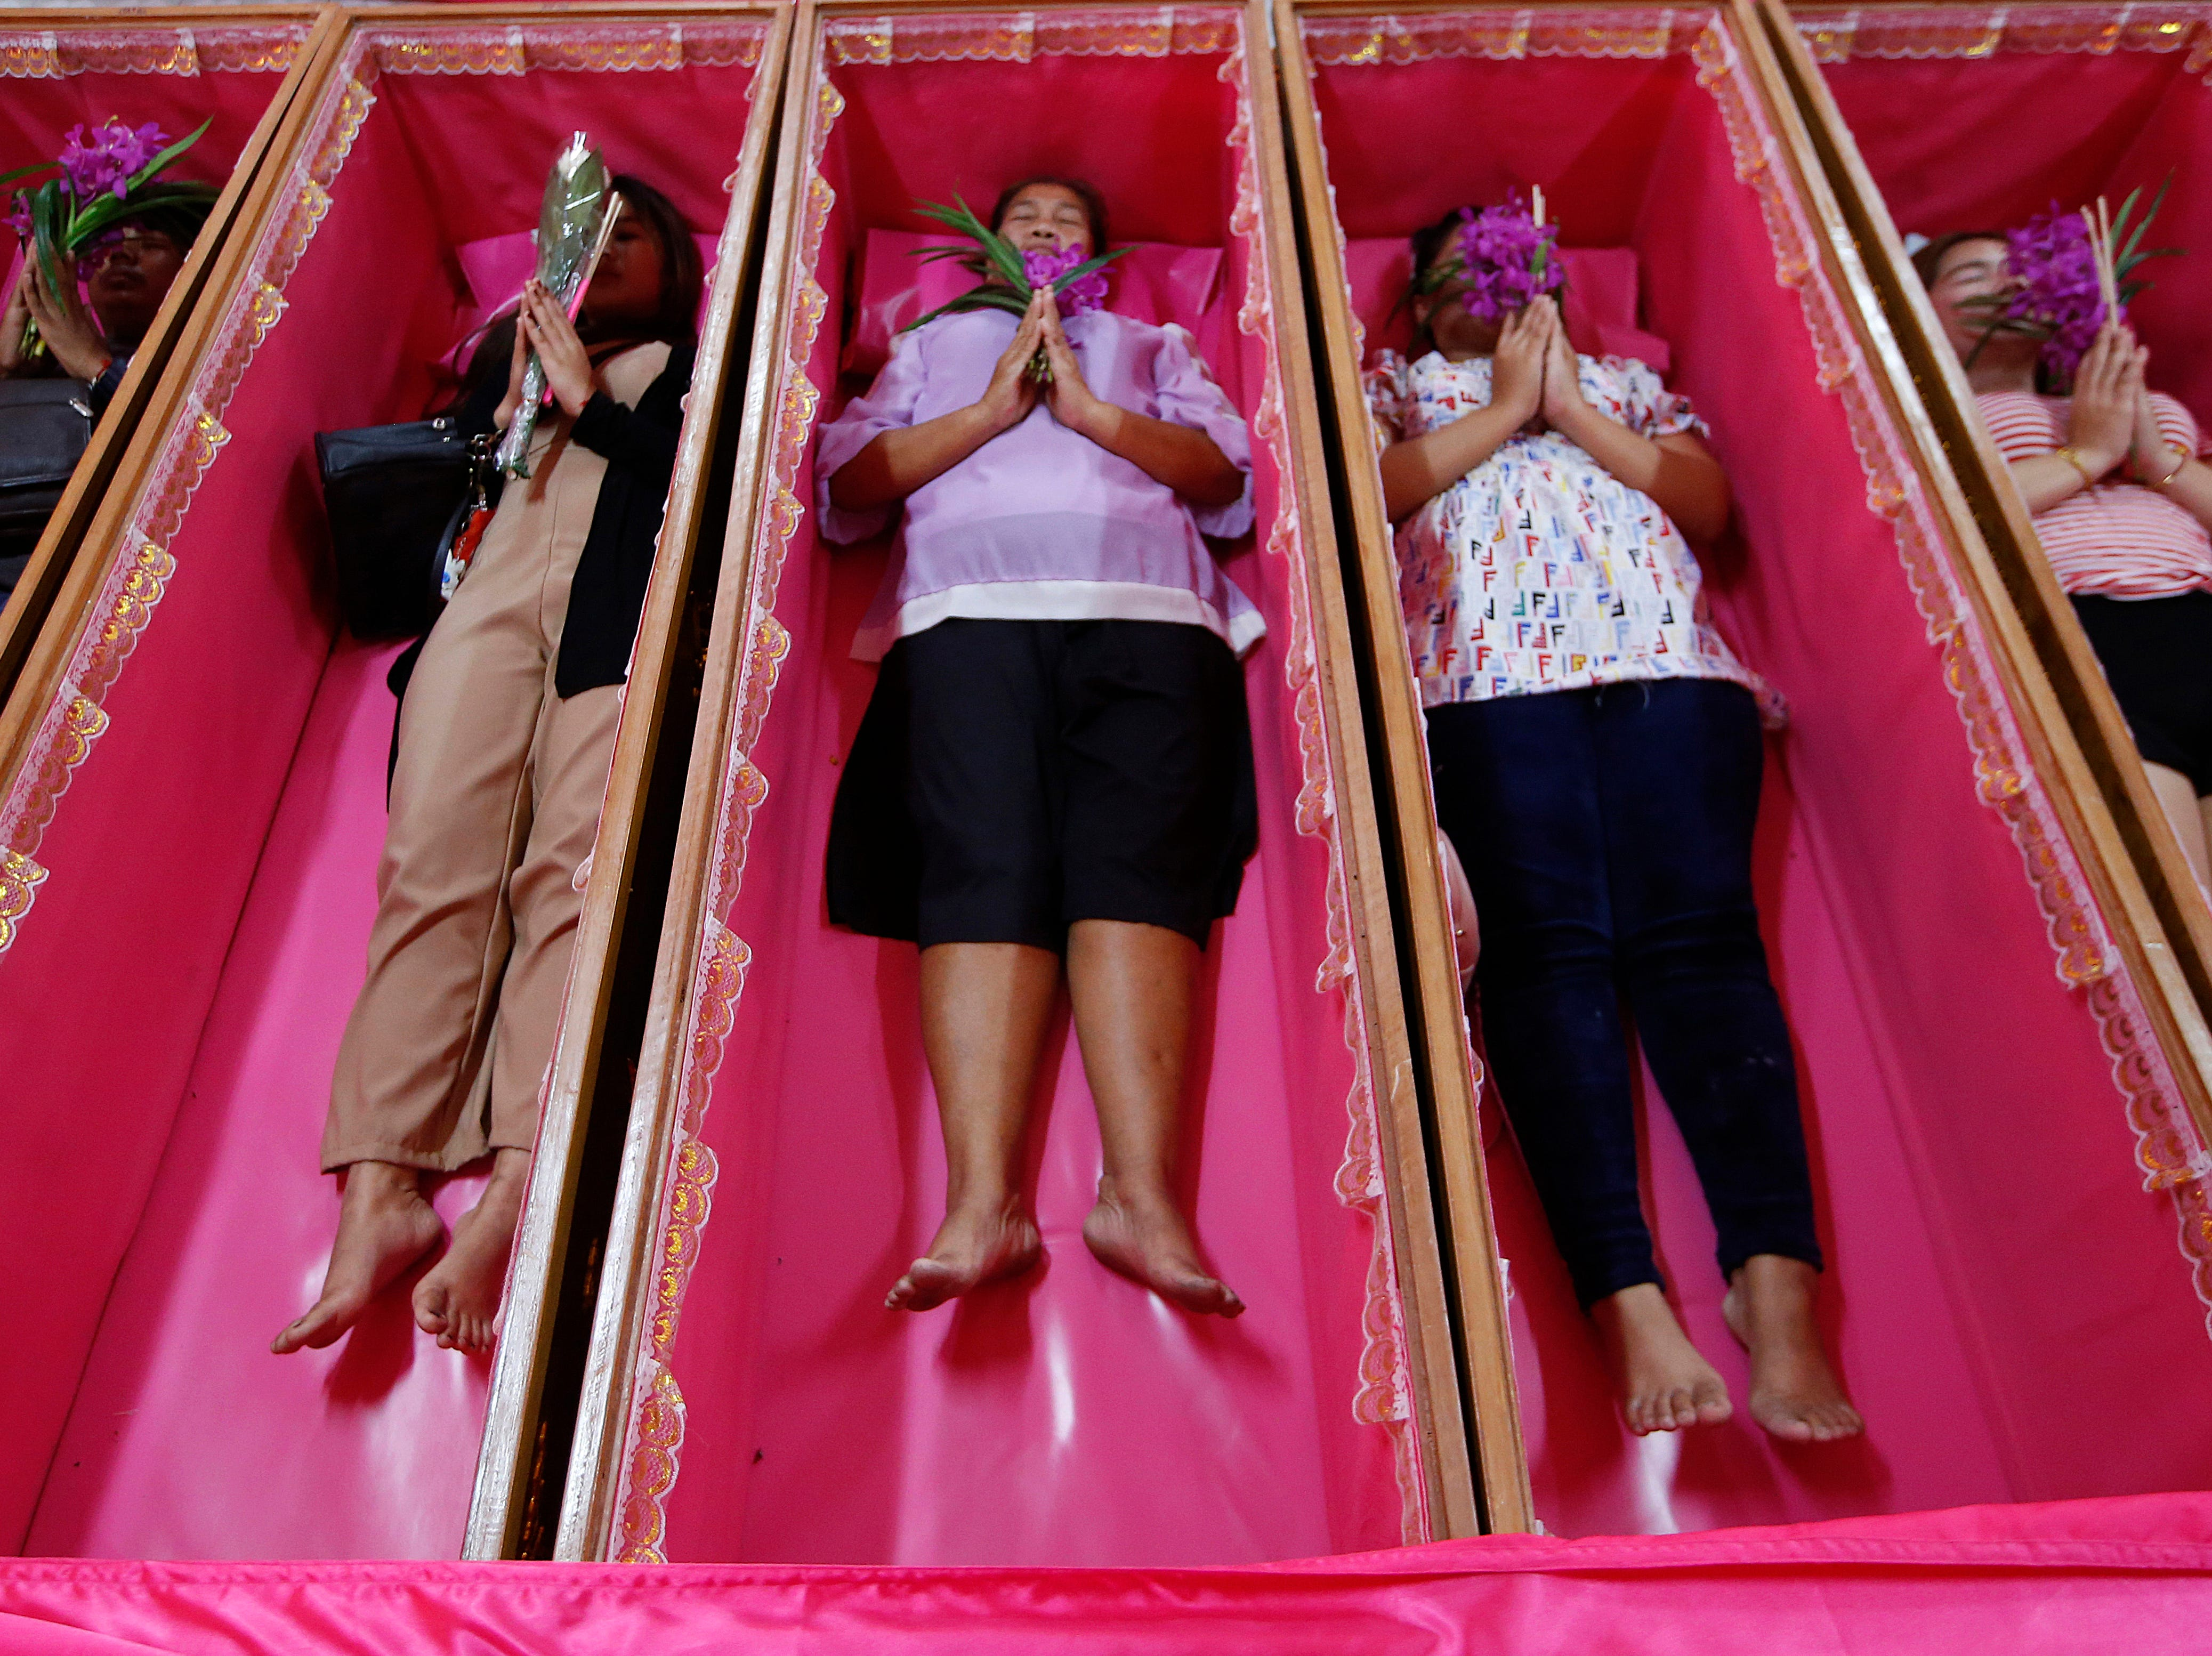 "Worshippers take turns praying in coffins during a ceremony at the Takien temple in suburban Bangkok, Thailand on Dec. 31, 2018. Participants believe the ceremony ""symbolizing death and rebirth"" helps rid themselves of bad luck and are born again for a fresh start in the new year."